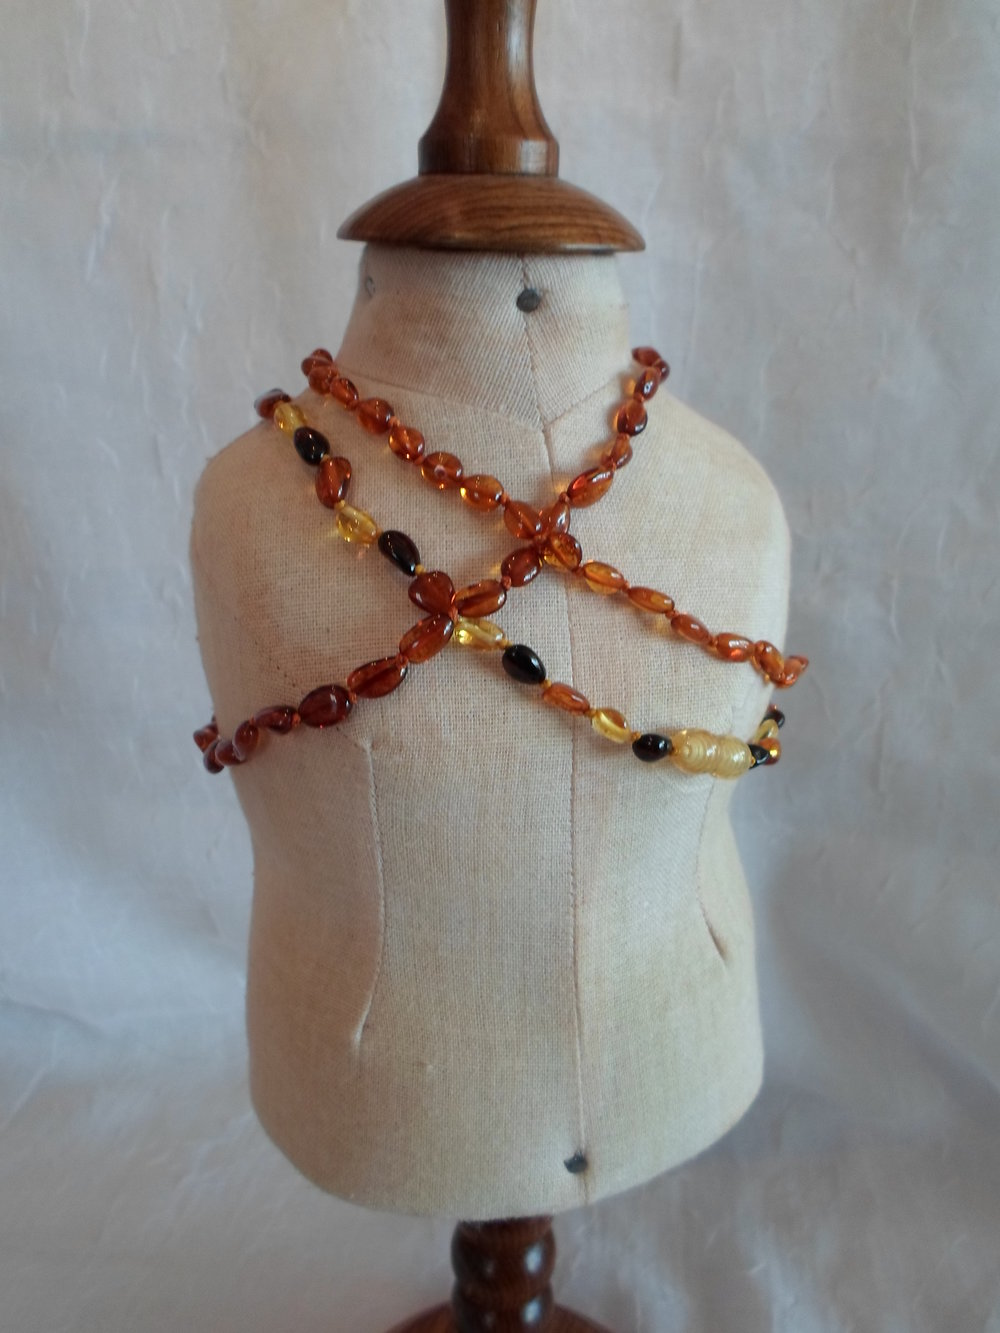 Amber Teething Necklace for Baby    $23.00 ea    Wants 3